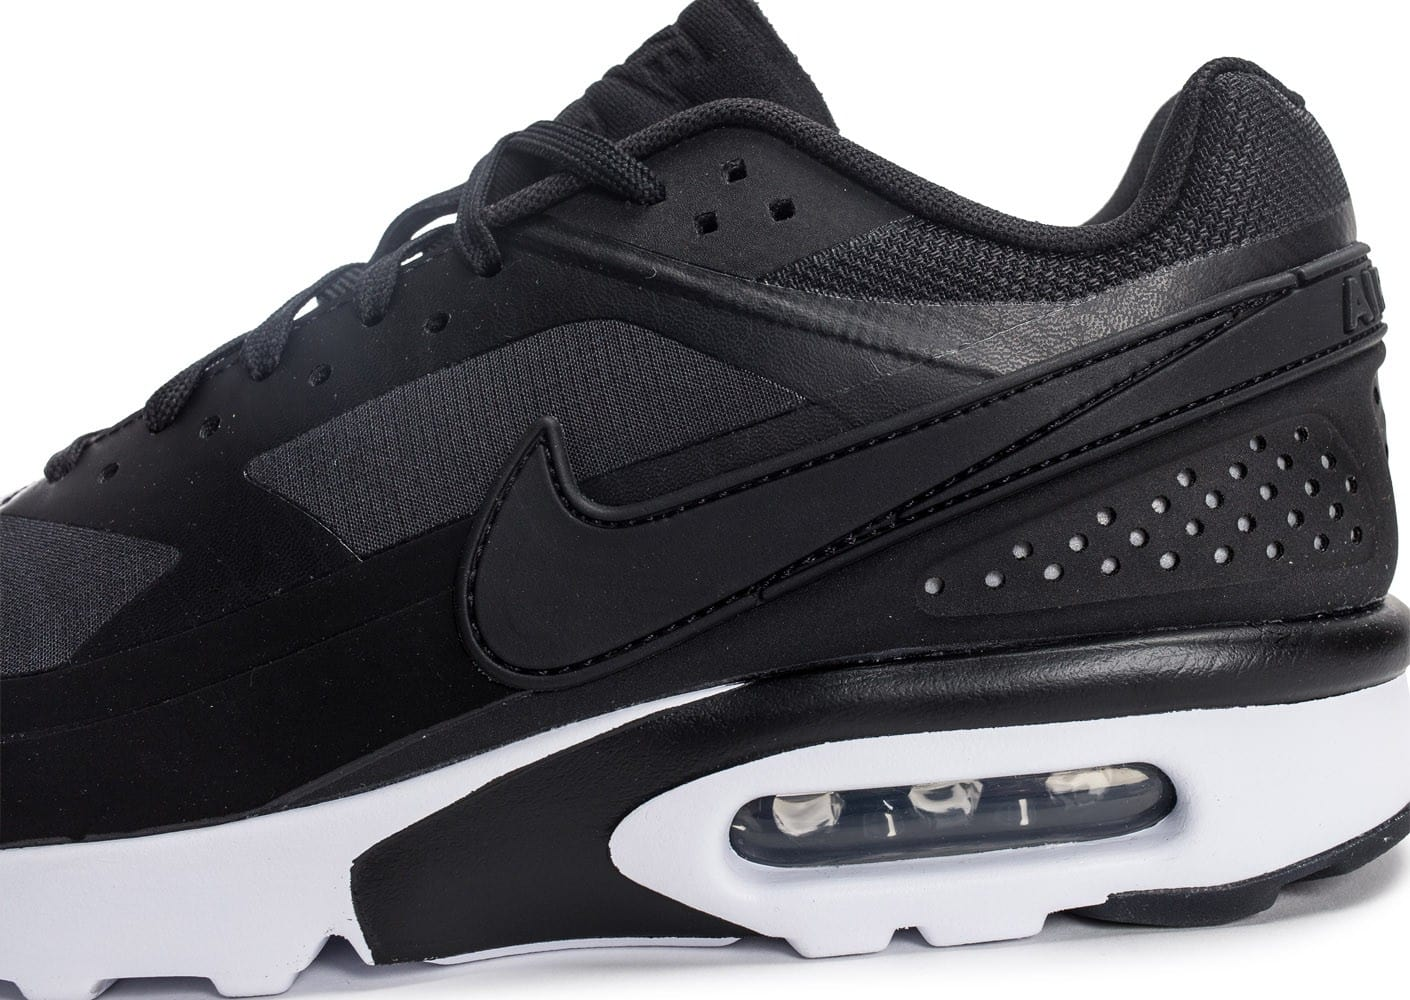 lowest price 5a1ea c4bd4 ... Chaussures Nike Air Max BW Ultra Leather anthracite vue dessus